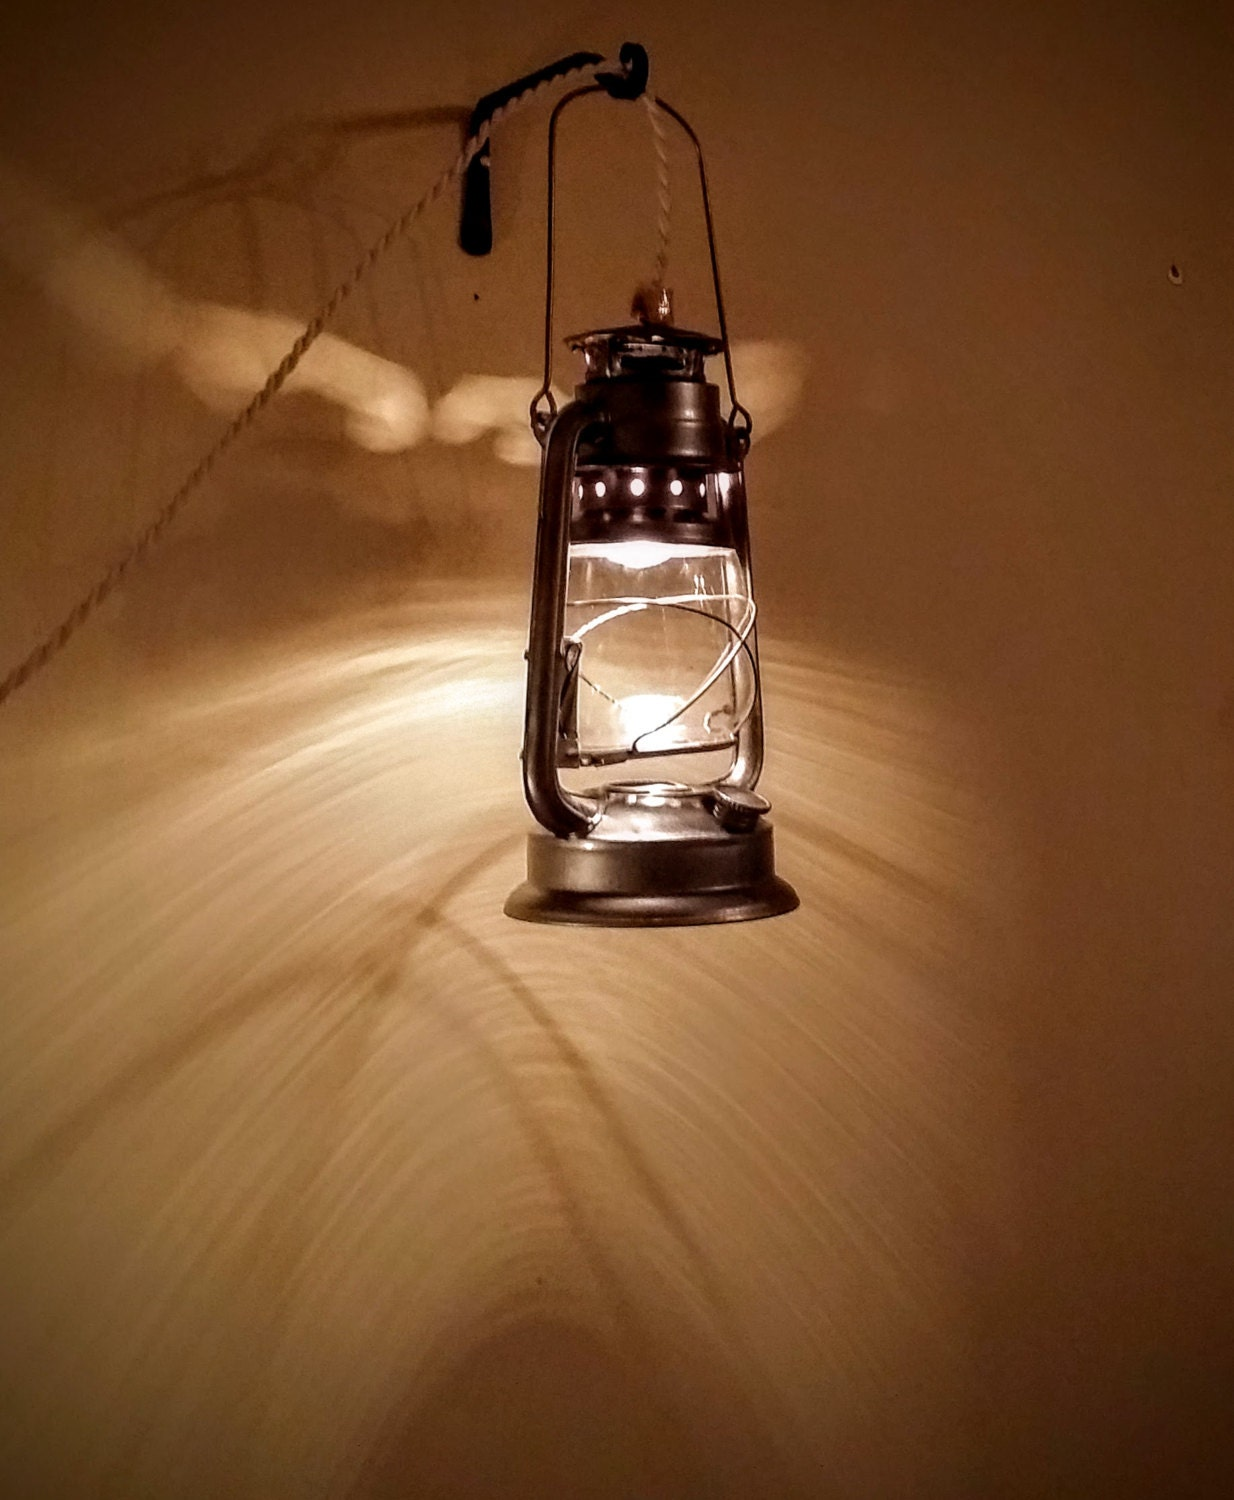 Large Pendant Lantern Lamp Plug-in Style by RecycledRevival